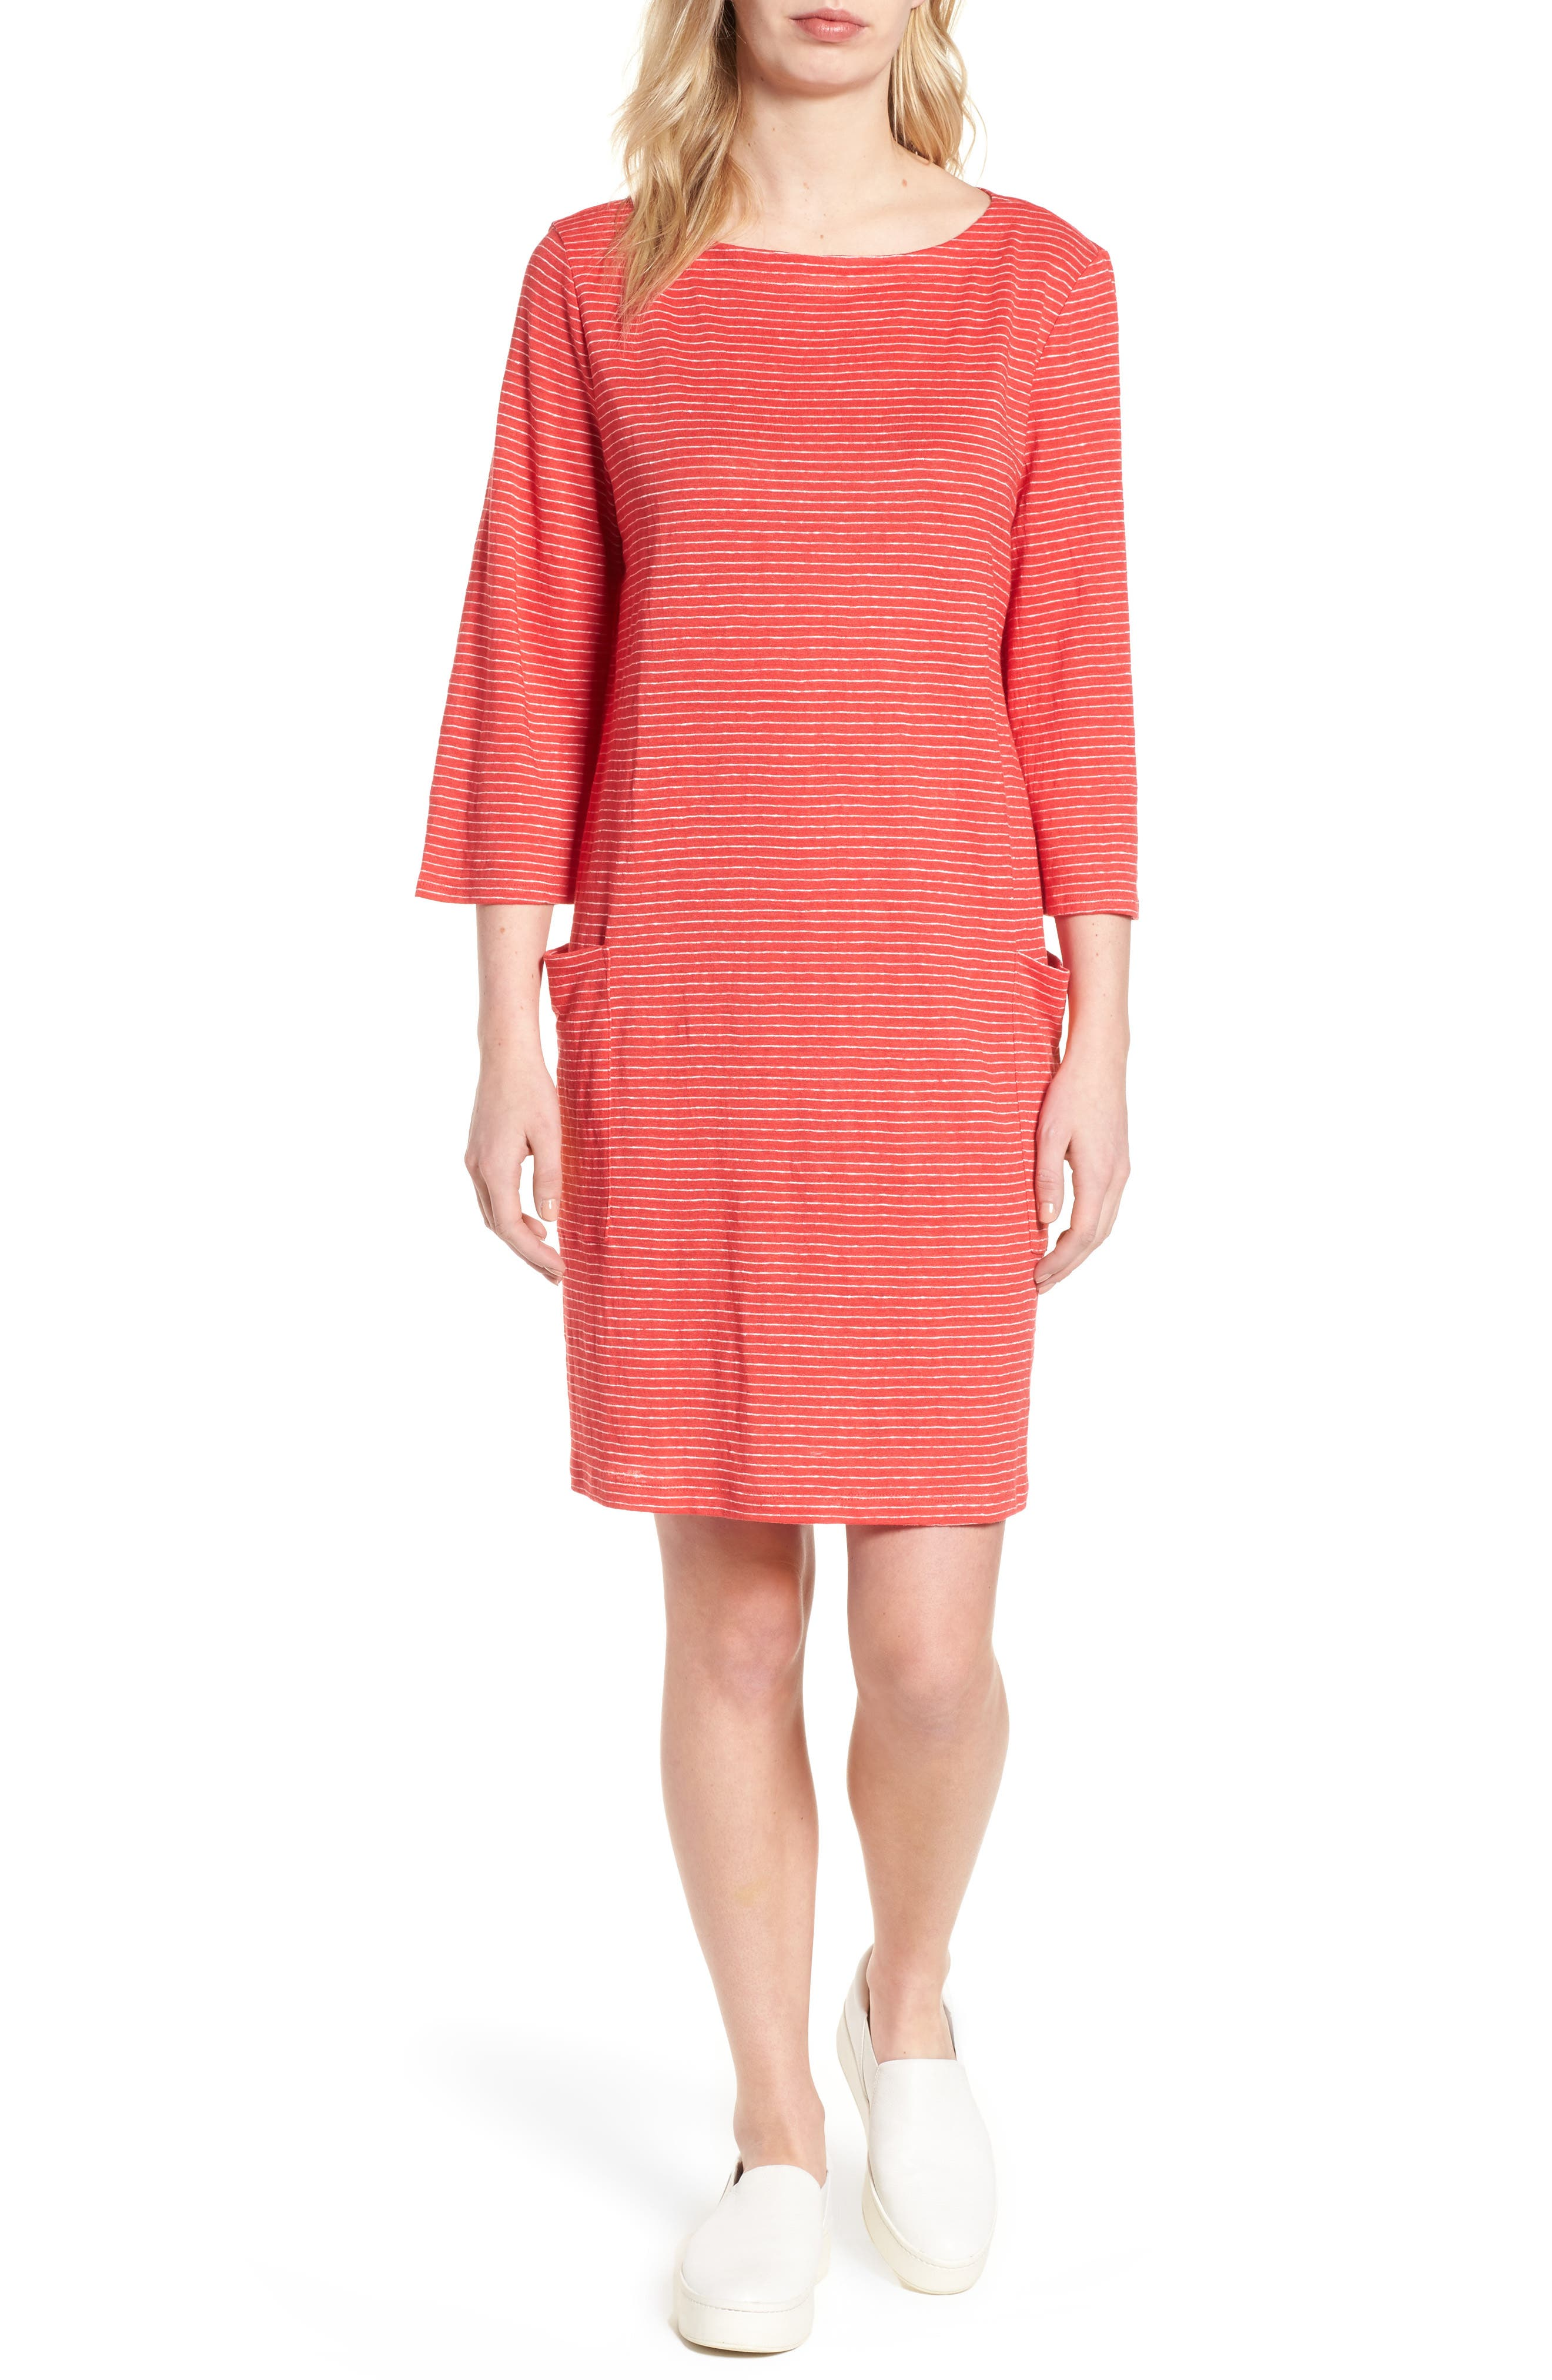 Eileen Fisher Organic Linen Shift Dress (Regular & Petite)